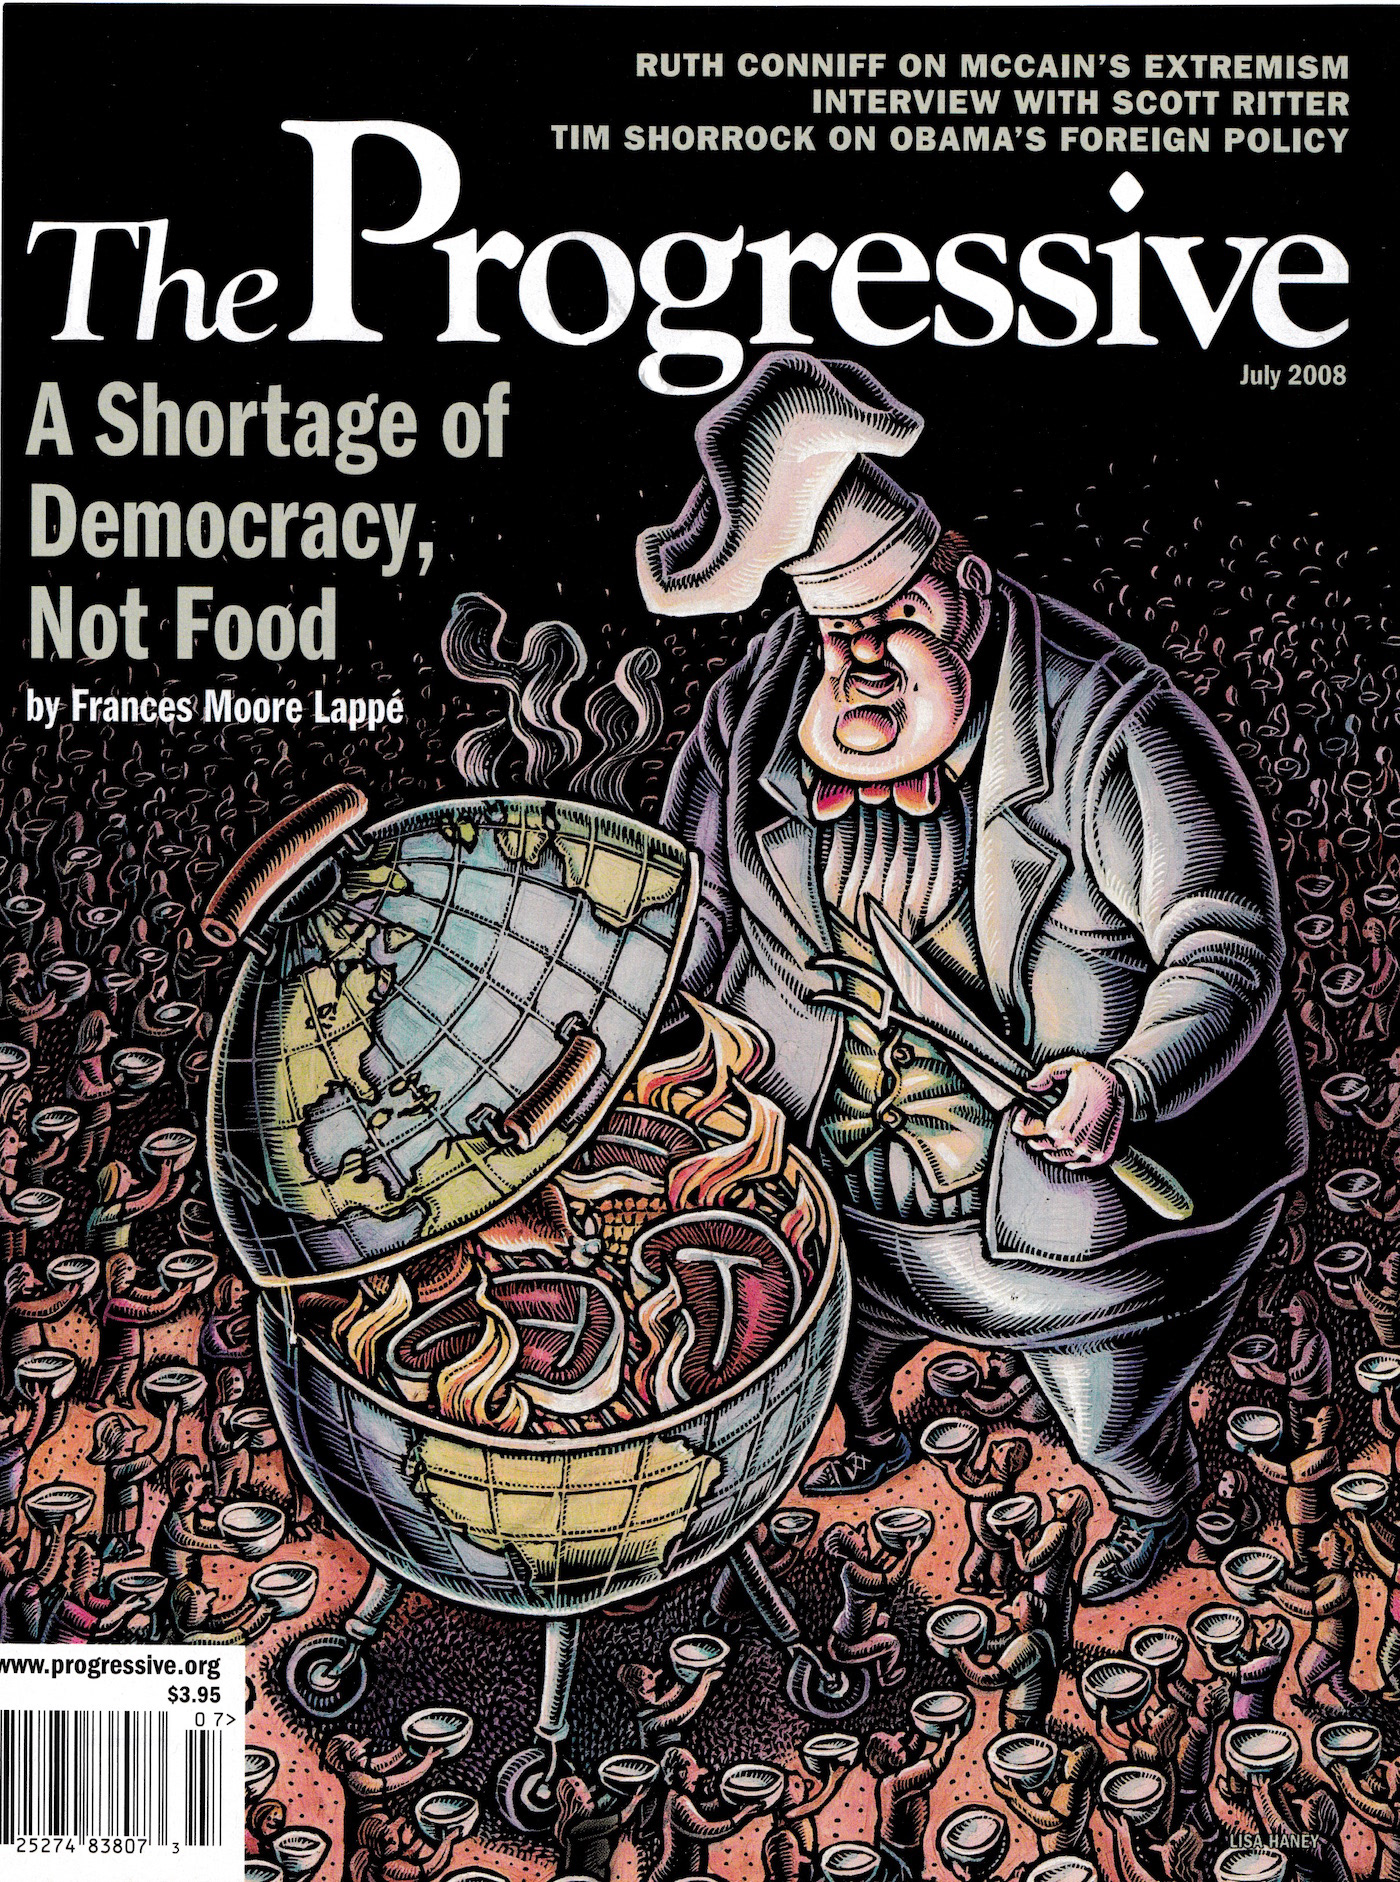 Magazine Illustrations: The Progressive